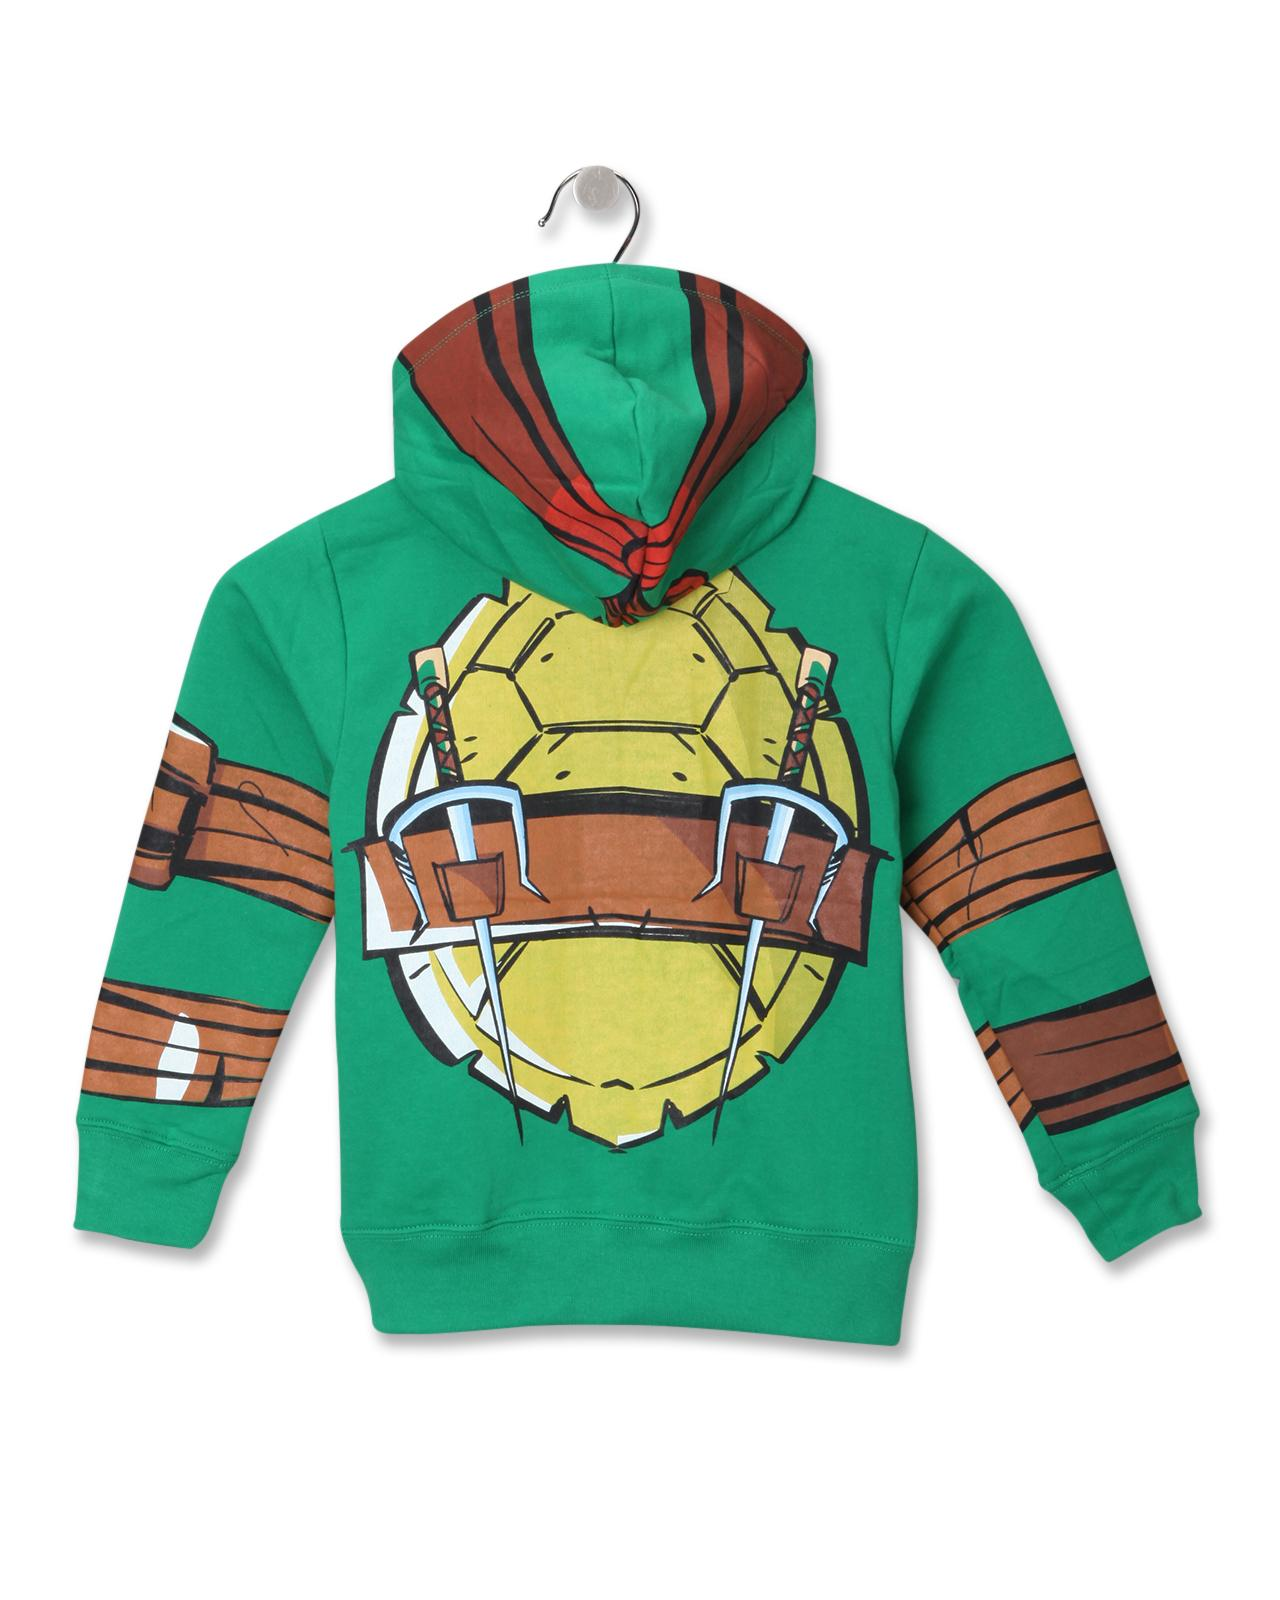 Fresh Ninja Turtle Inspired Products and Designs